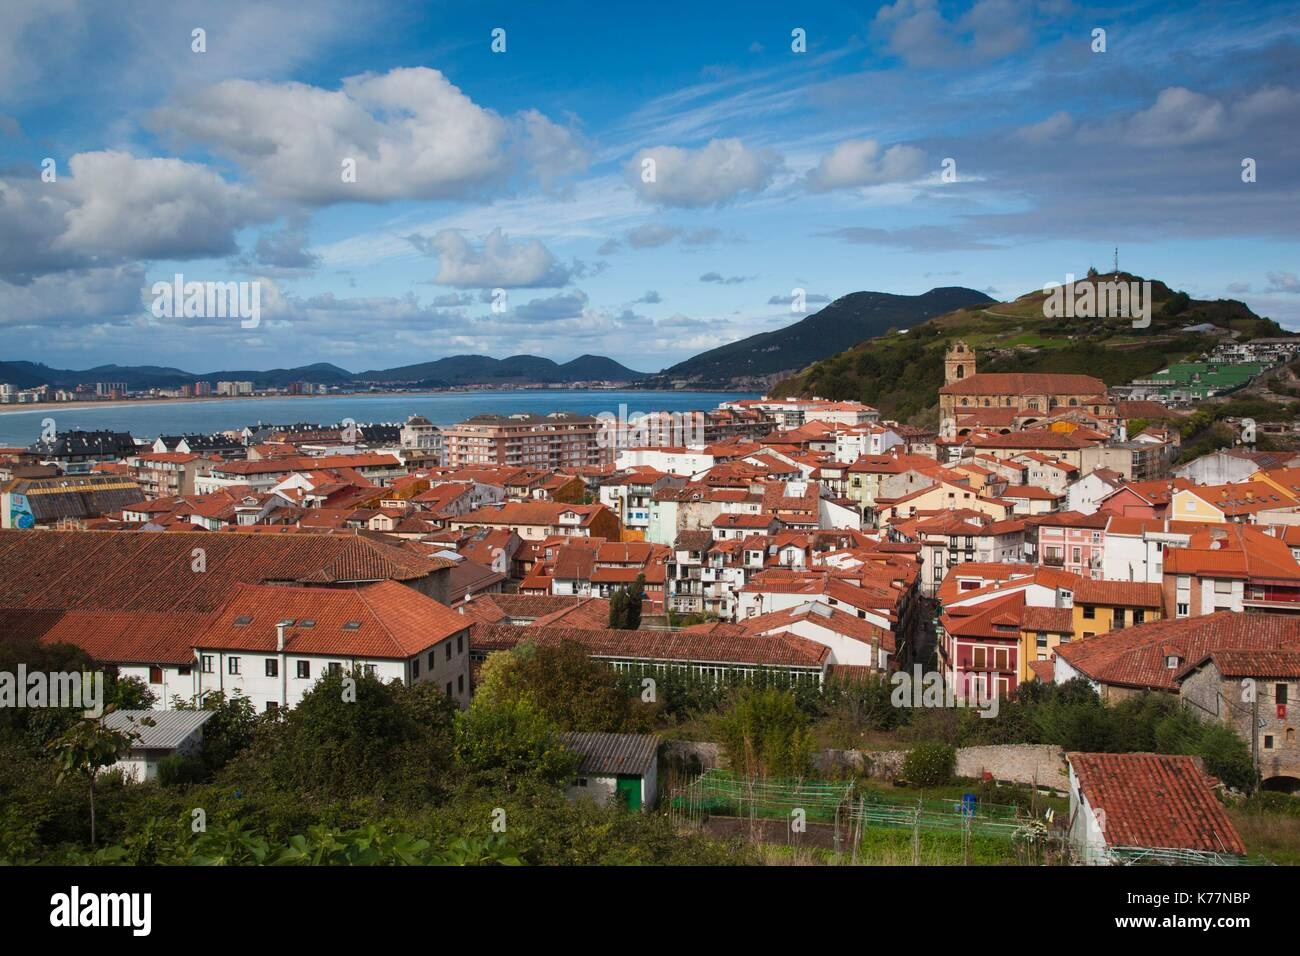 Spain, Cantabria Region, Cantabria Province, Laredo, elevated view of old town Stock Photo